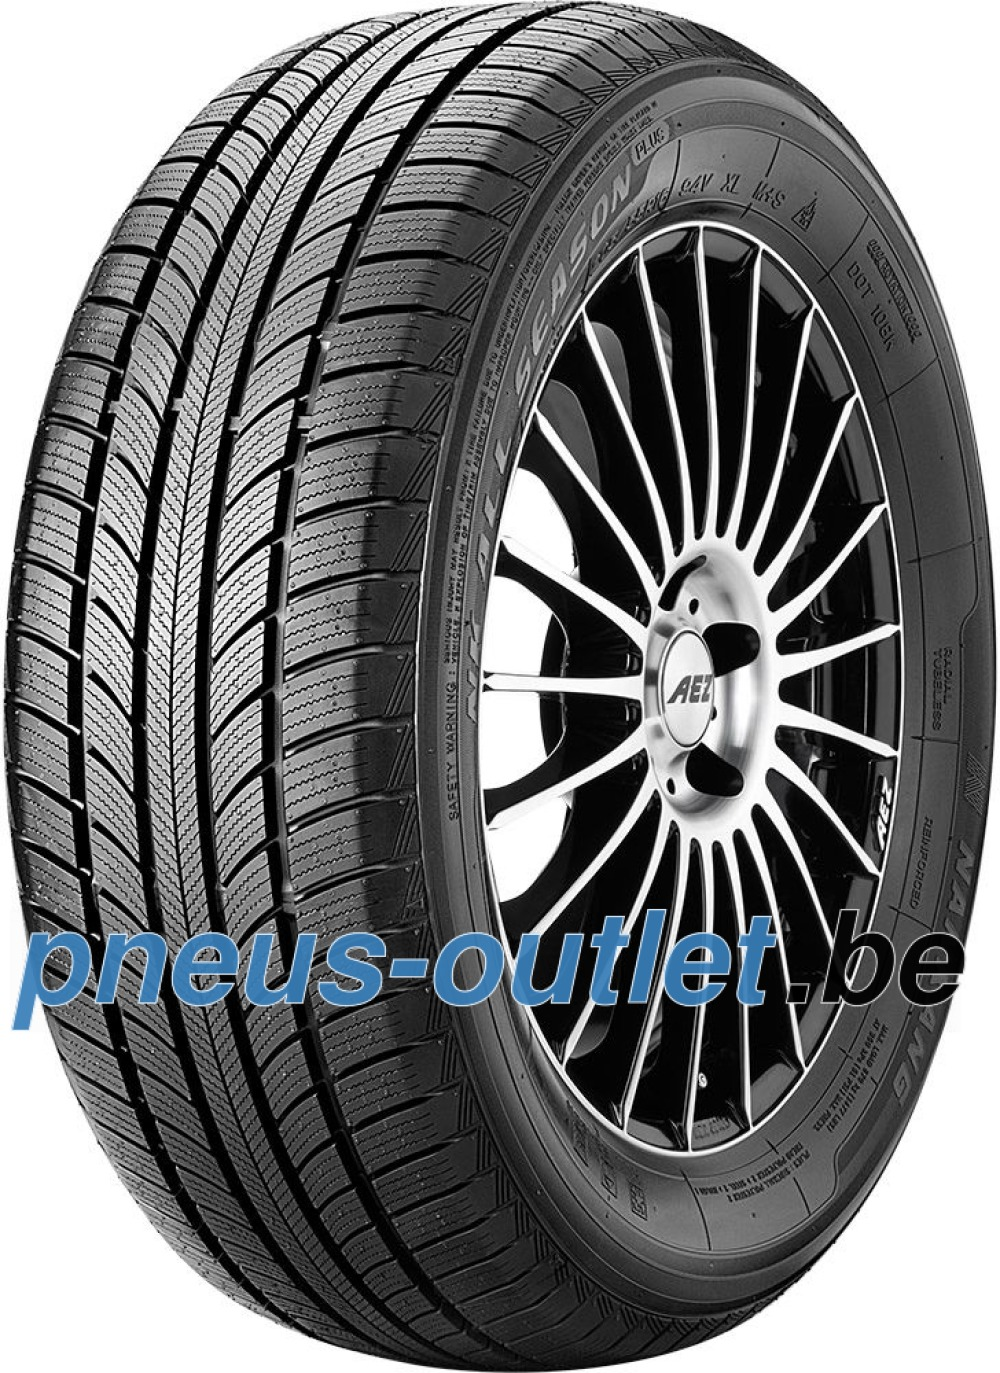 Nankang All Season Plus N-607+ ( 195/55 R16 87H )